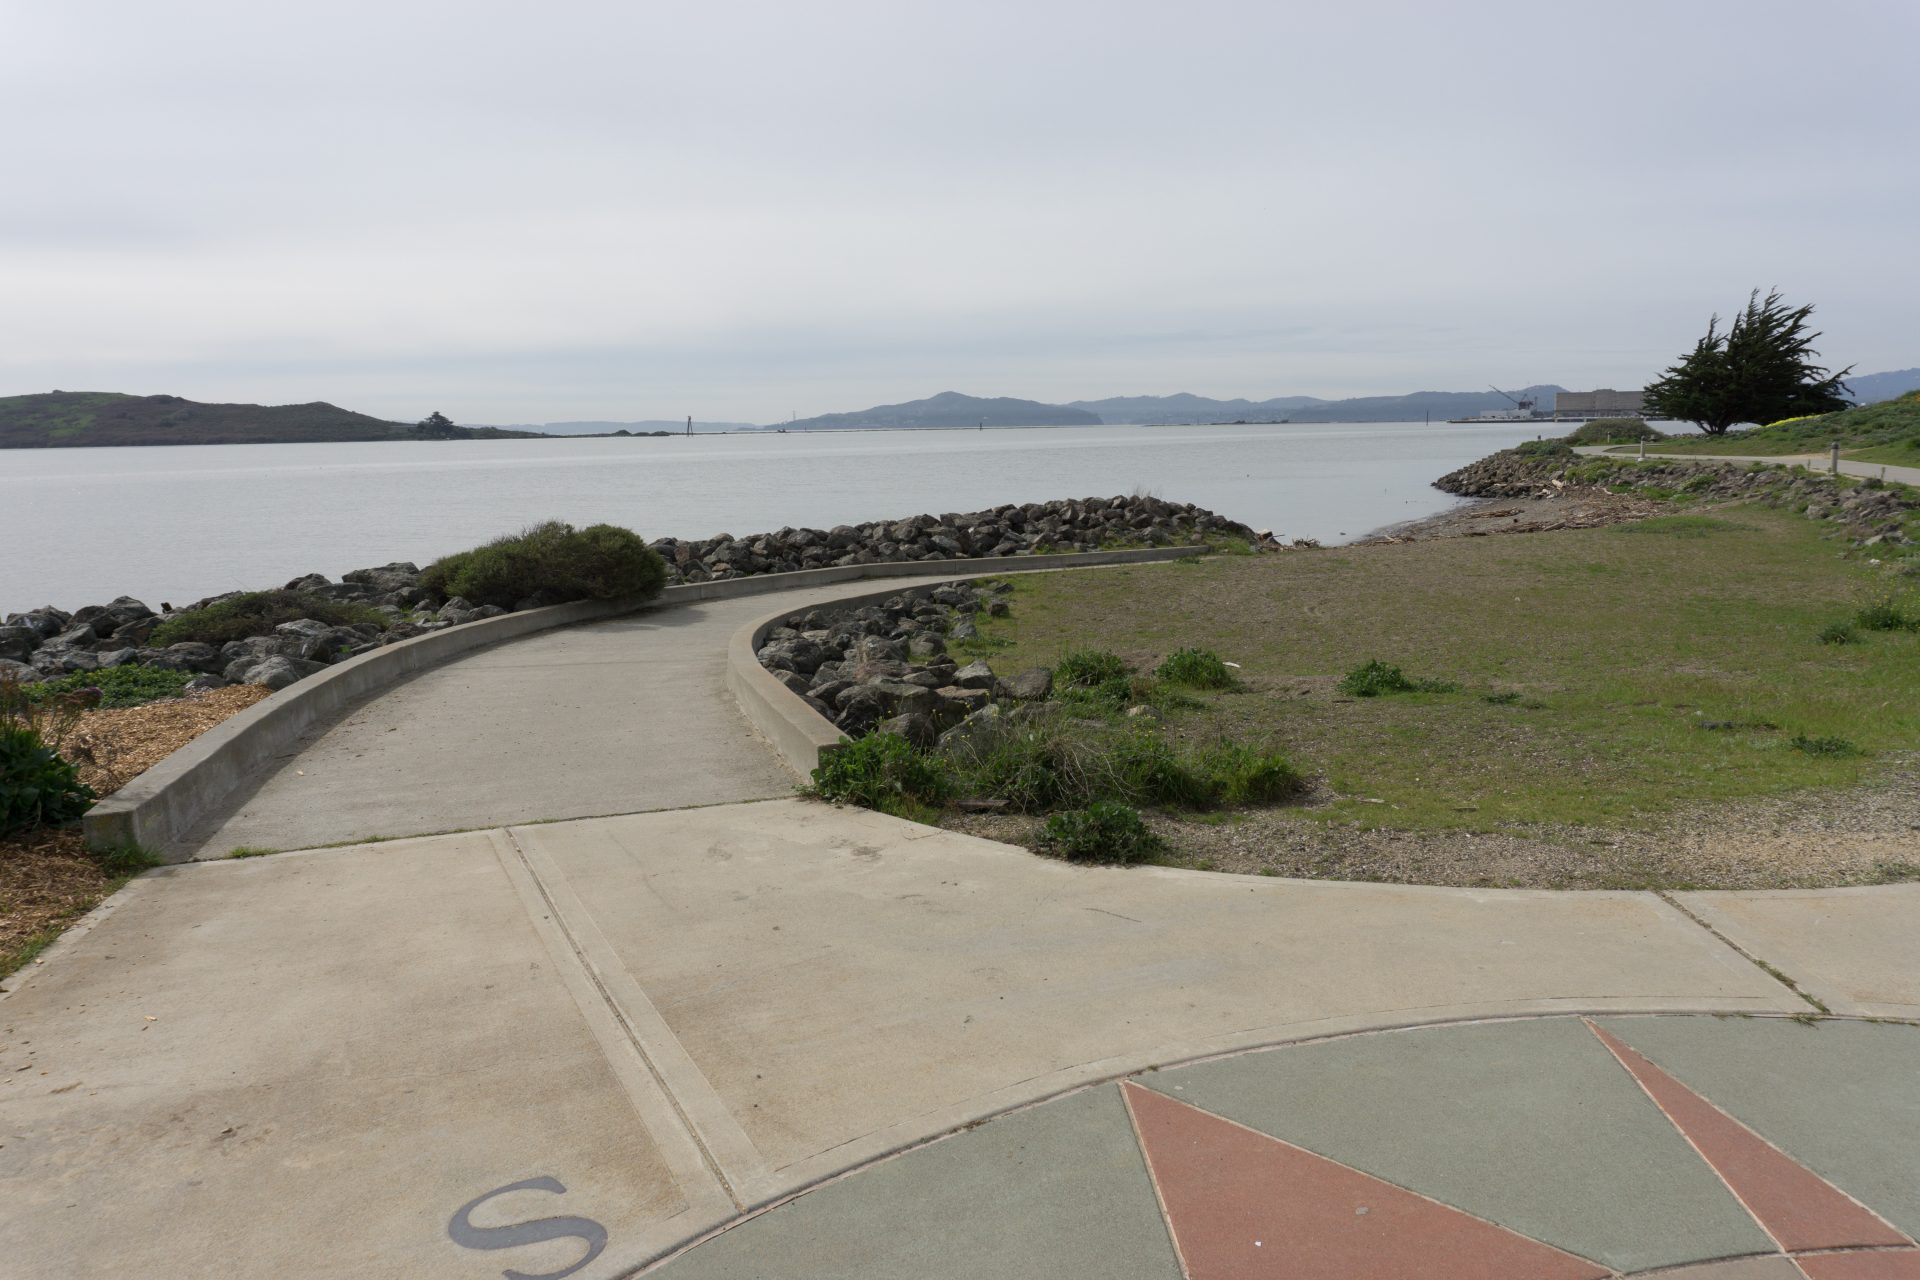 Paved path with curbs on either side curved away to right, Bay beyond.